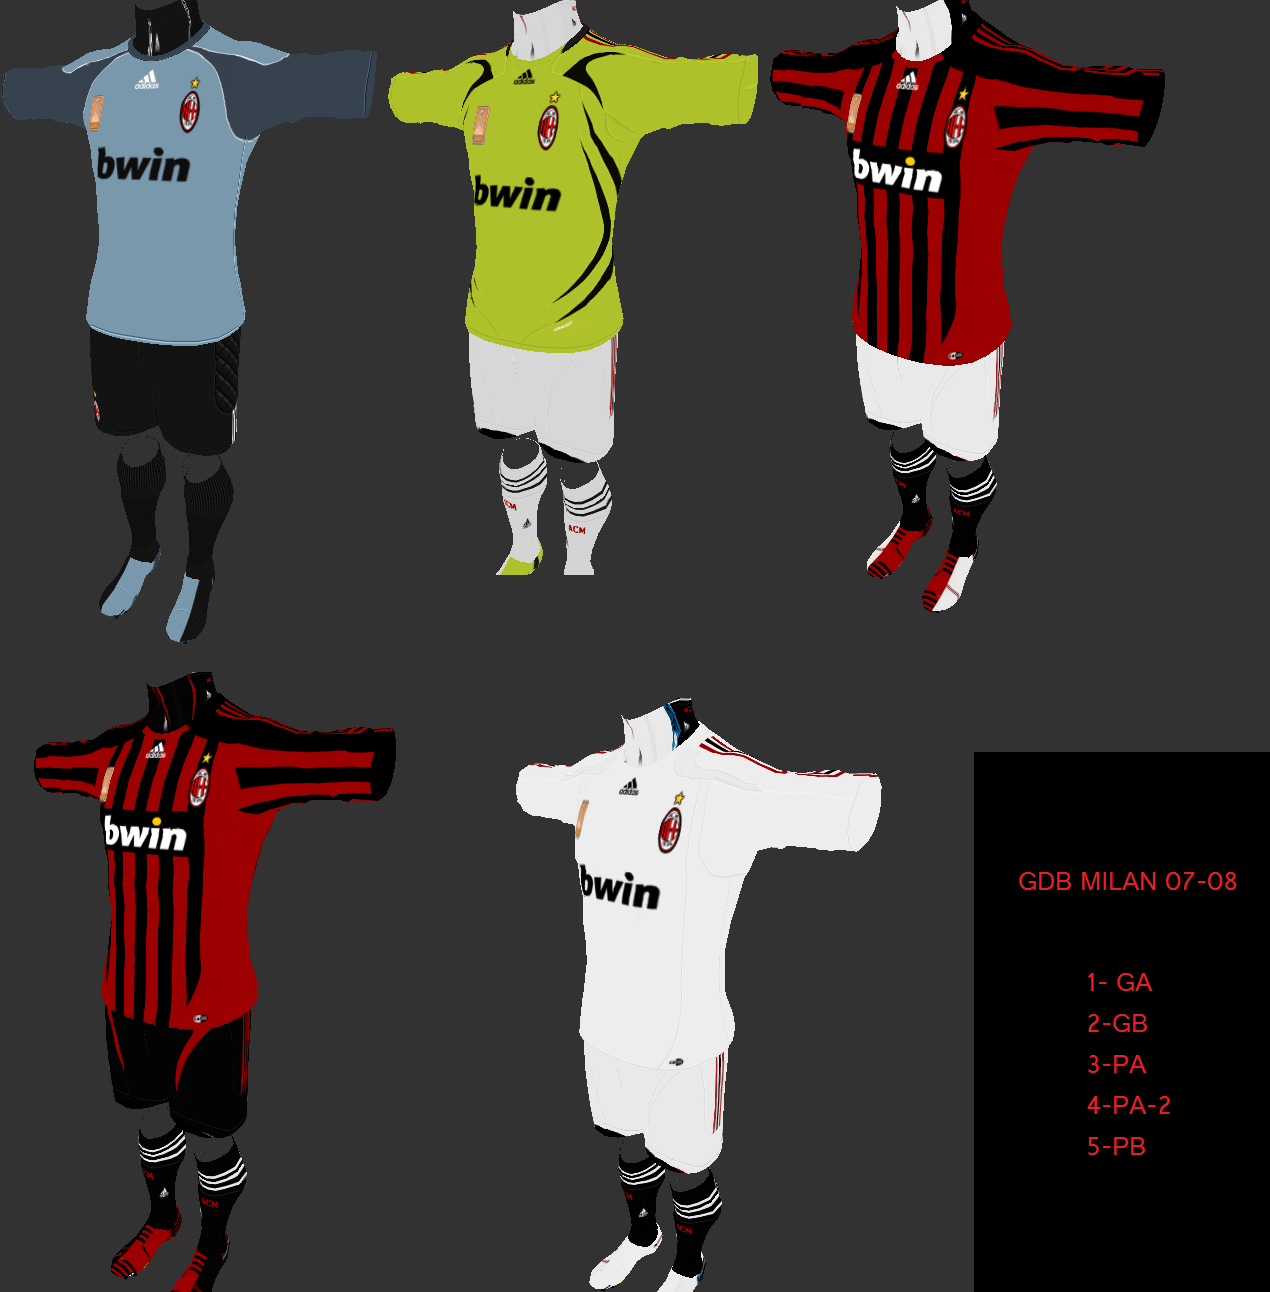 Classic Kits by JSC Netherlands 2002 + Pxd [NO REQUESTS] - Page 2 22adcb28fee8a7c978add78b9d56d0ado